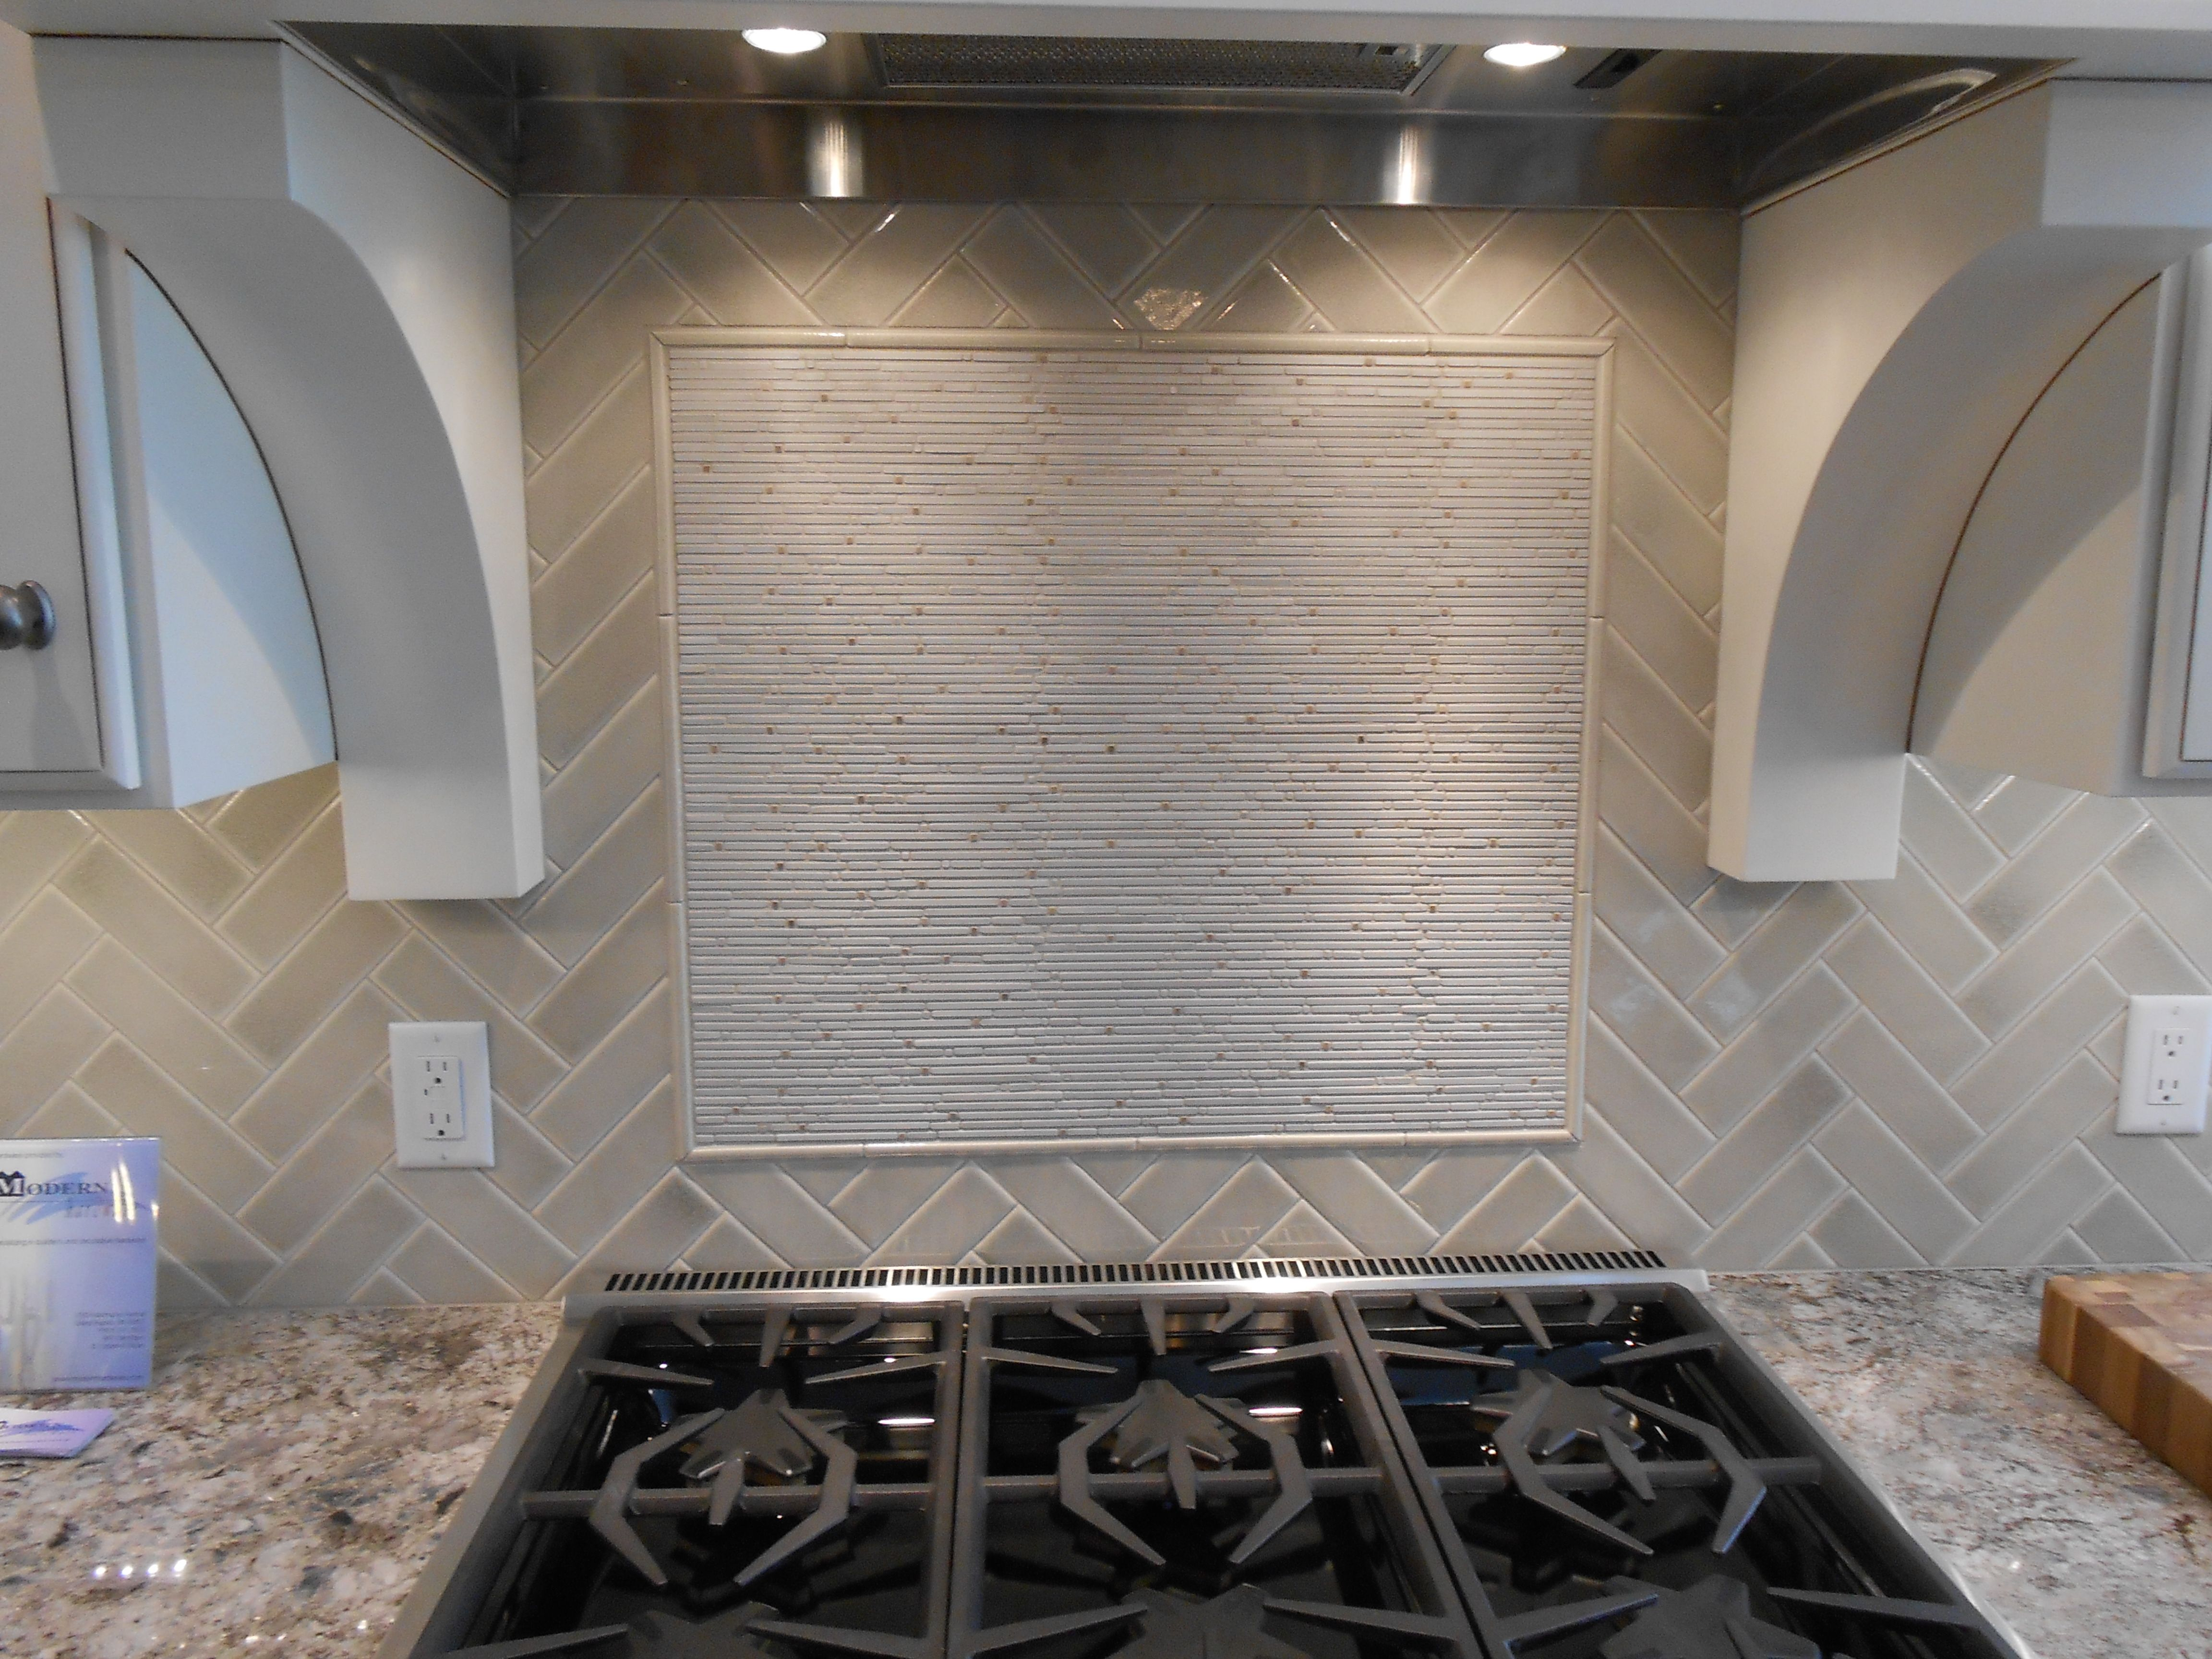 Herringbone Tile With Accent Feature Over Stove In 2019